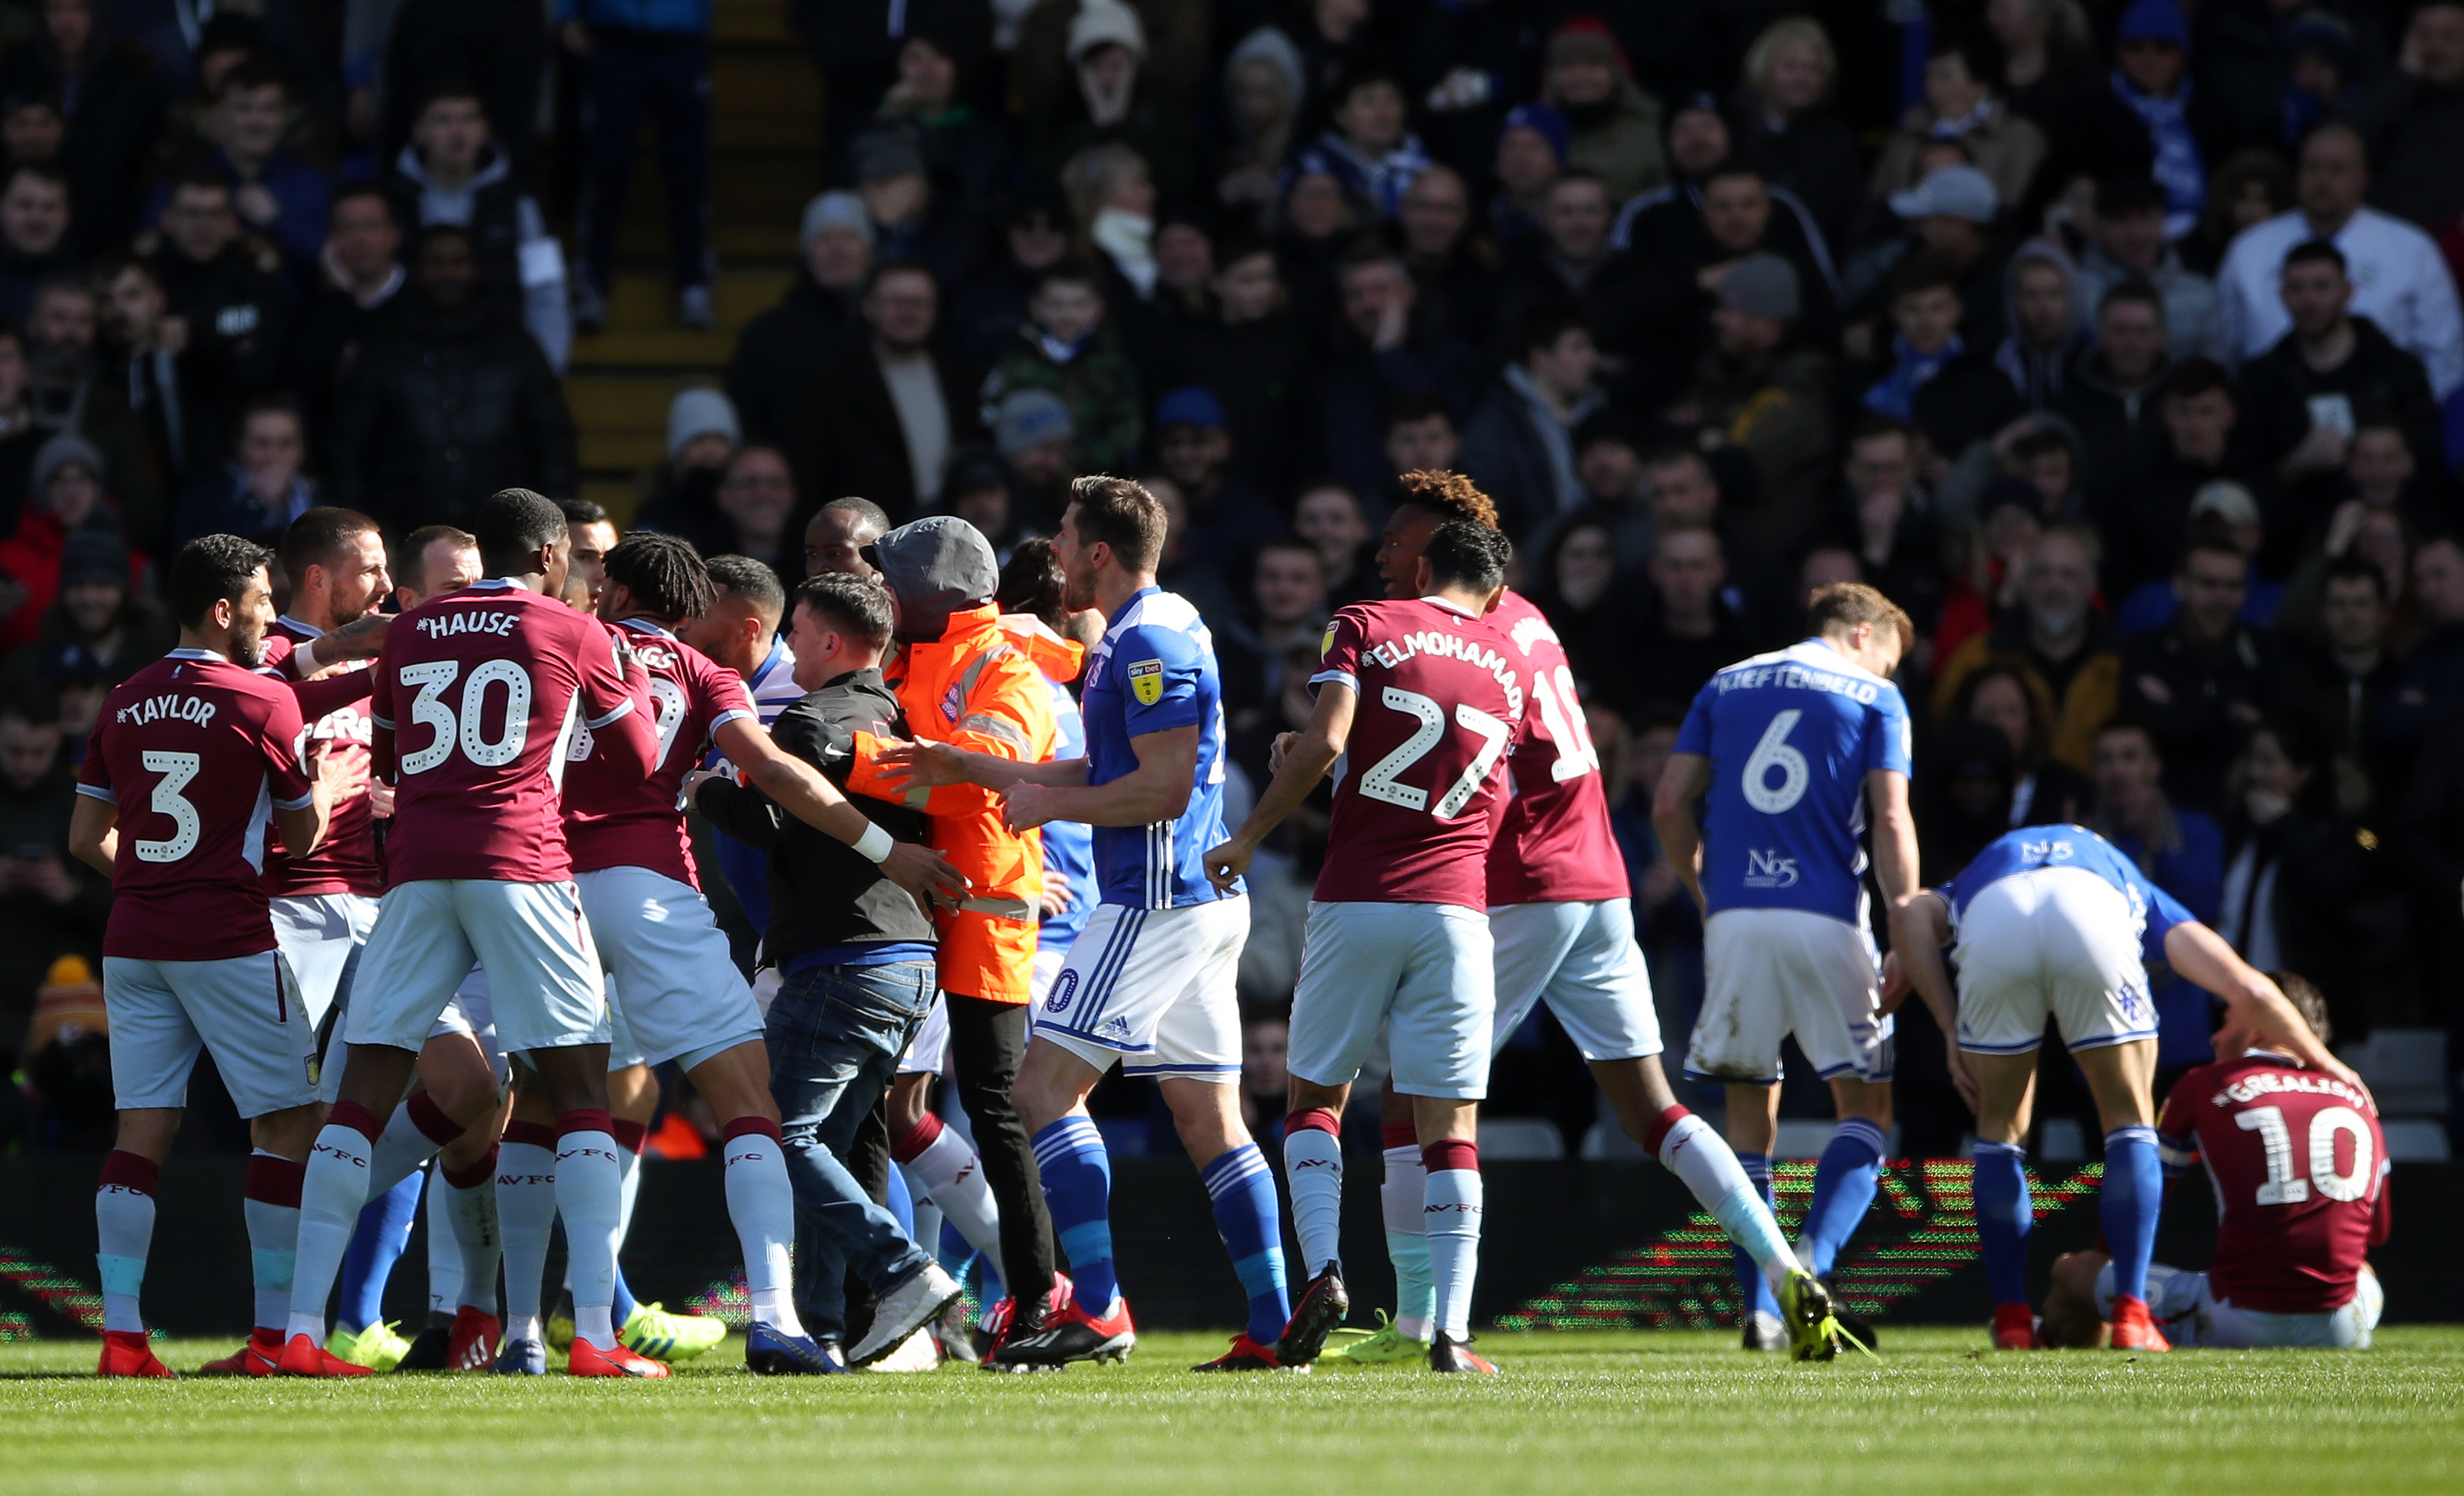 Man charged over Jack Grealish assault during Birmingham vs Aston Villa